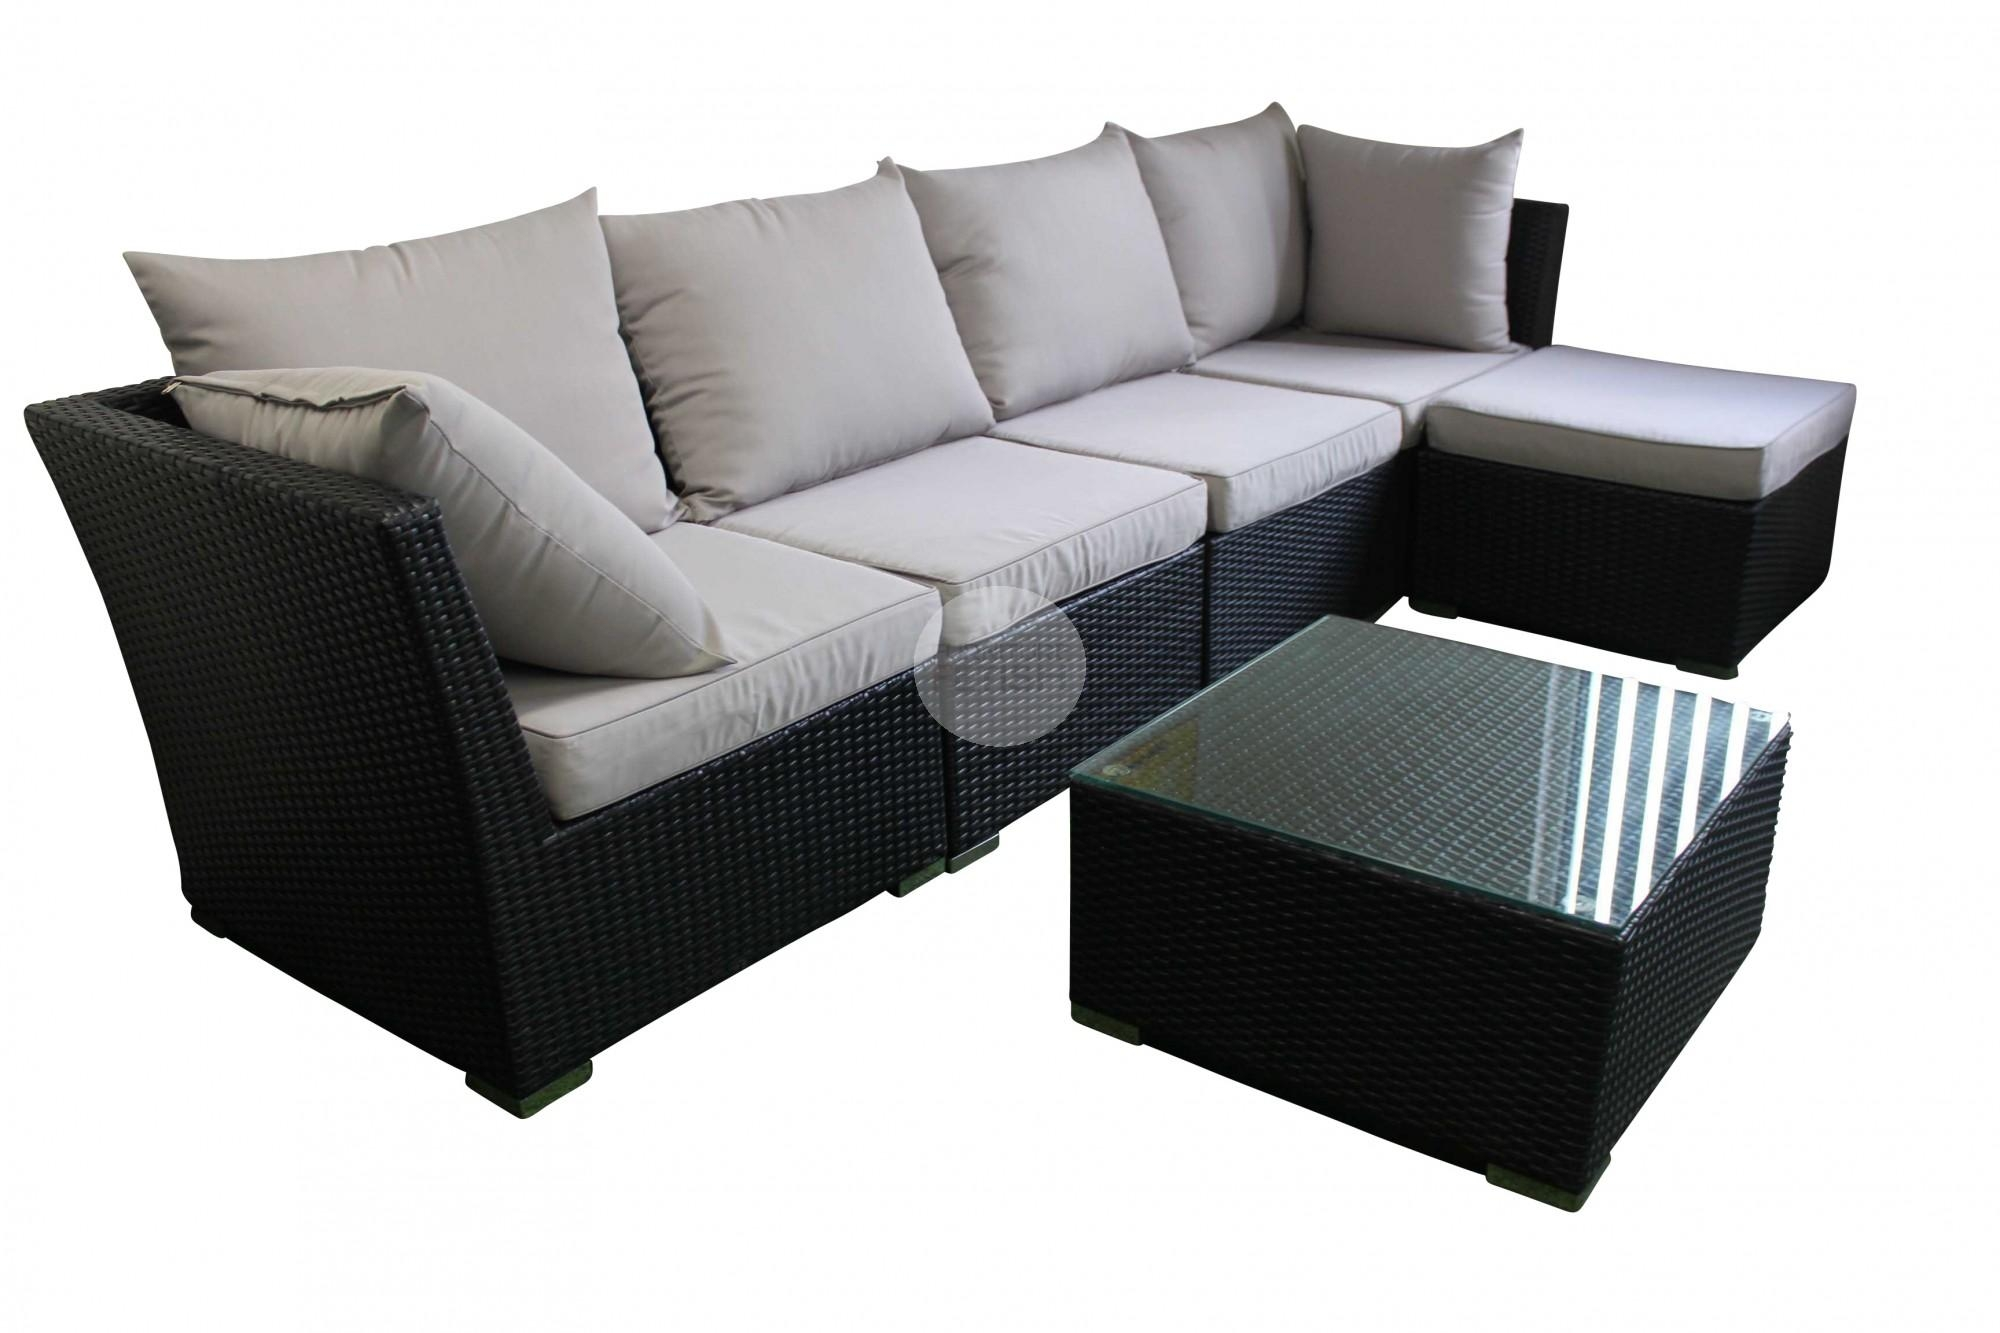 rattan sofa and coffee table modern teak wood set 20 collection of black wicker sofas ideas